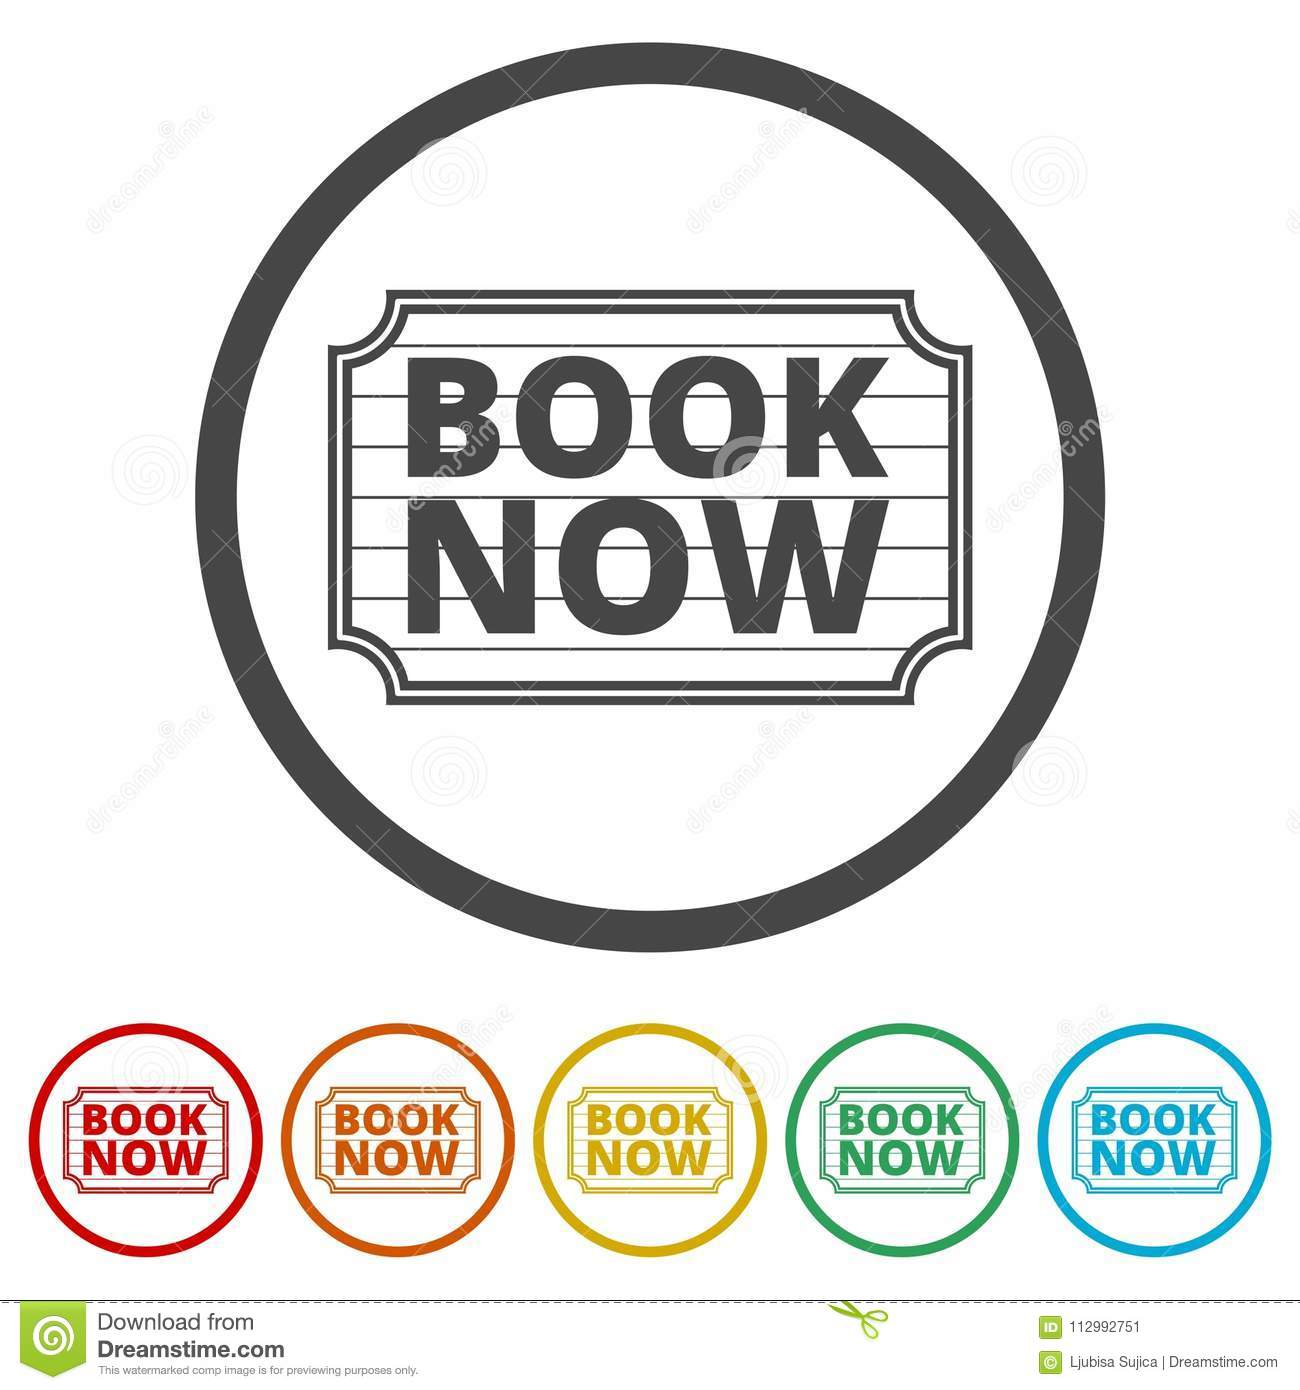 Book Now icon, Book Now sign, 6 Colors Included